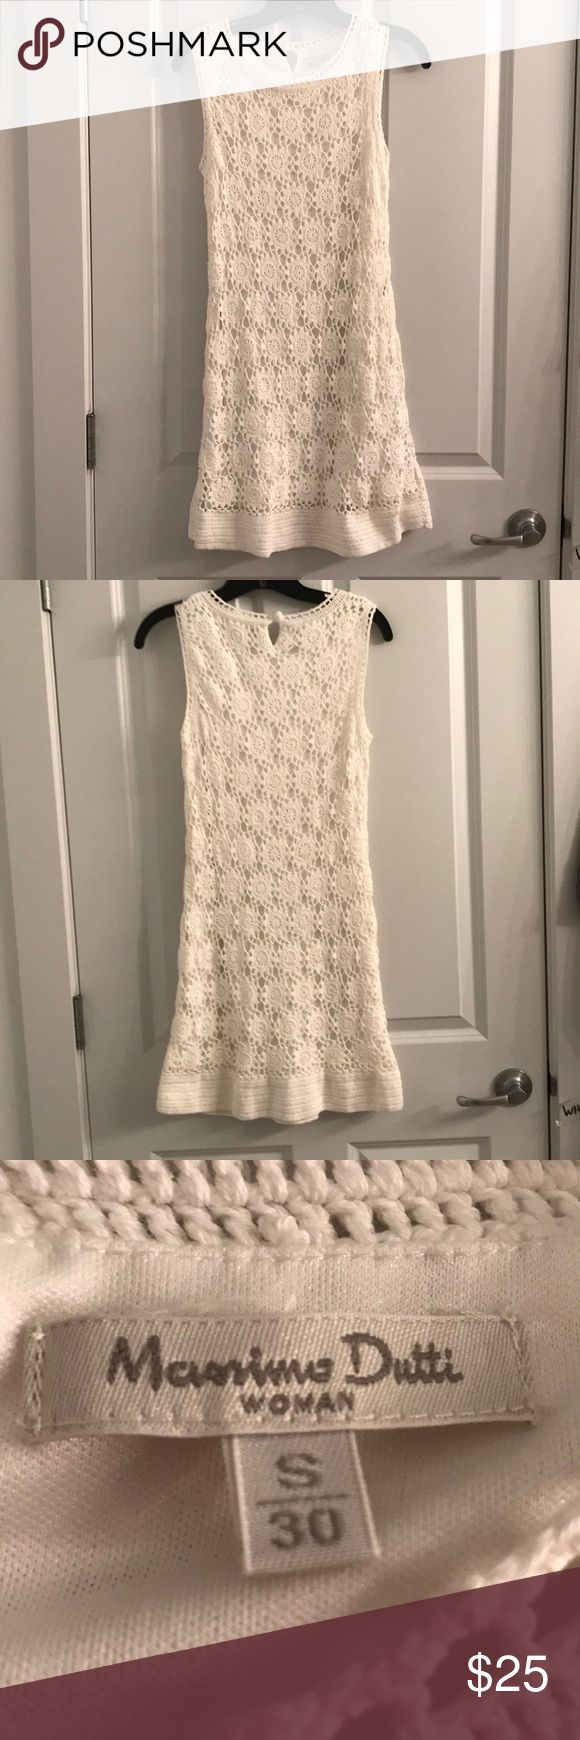 Crochet Sheath Dress Lovely summer sheath dress in white crochet with white lining. No defects, great condition, i just don't wear it! Massimo Dutti Dresses